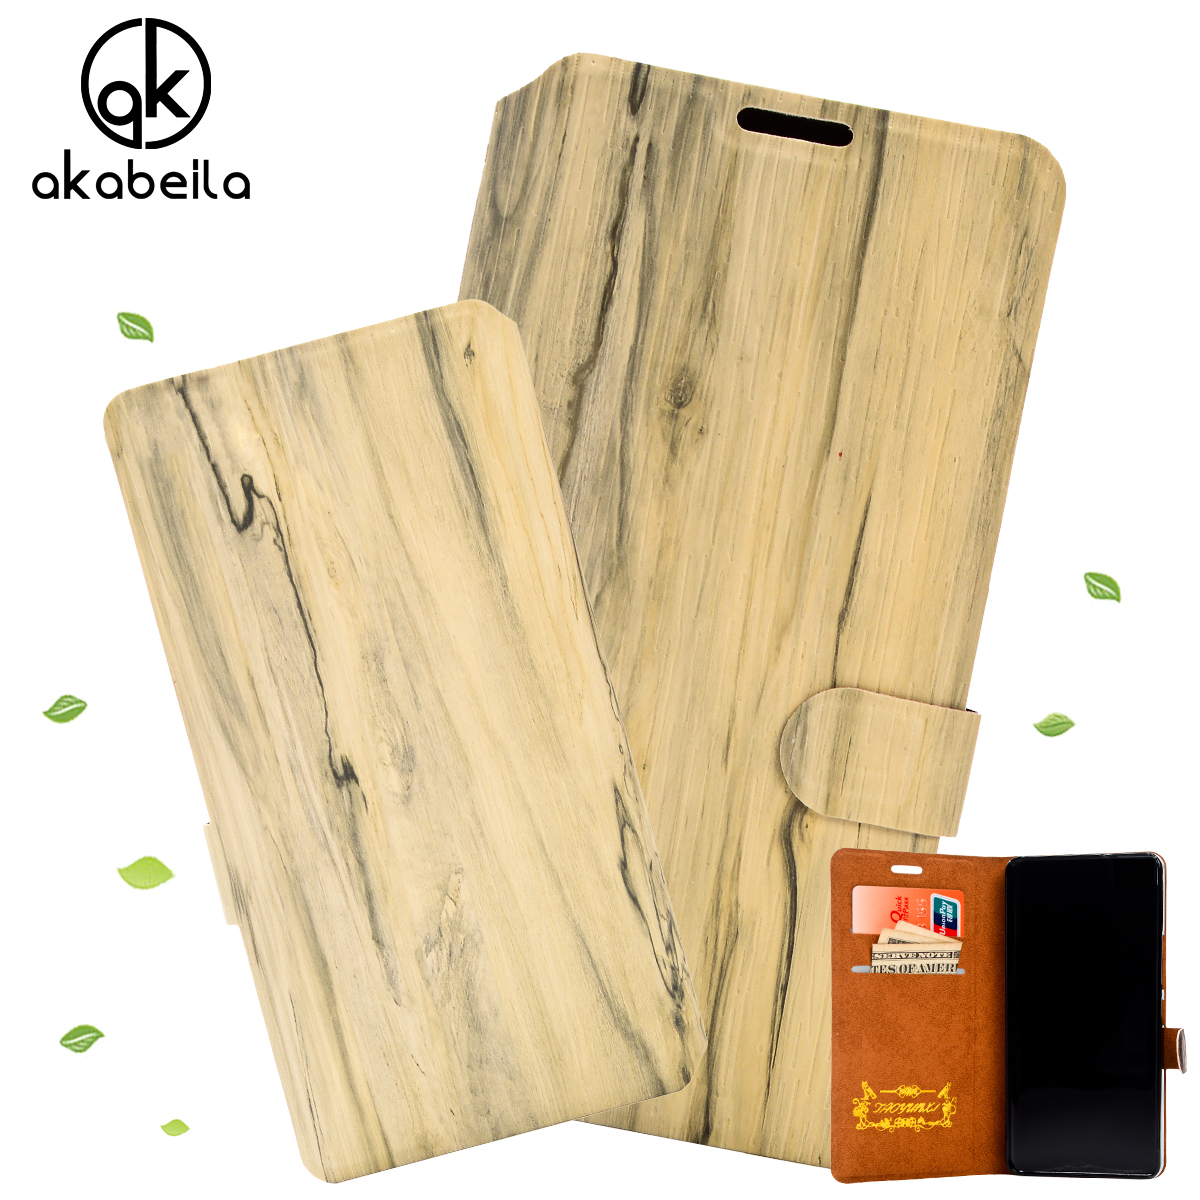 New Come Slim Wood Grain PU Leather Case for Xiaomi 4 M4 mi4 Xiaomi4 Wallet Style Fashion Flip Phone Cover 6 Colors Available